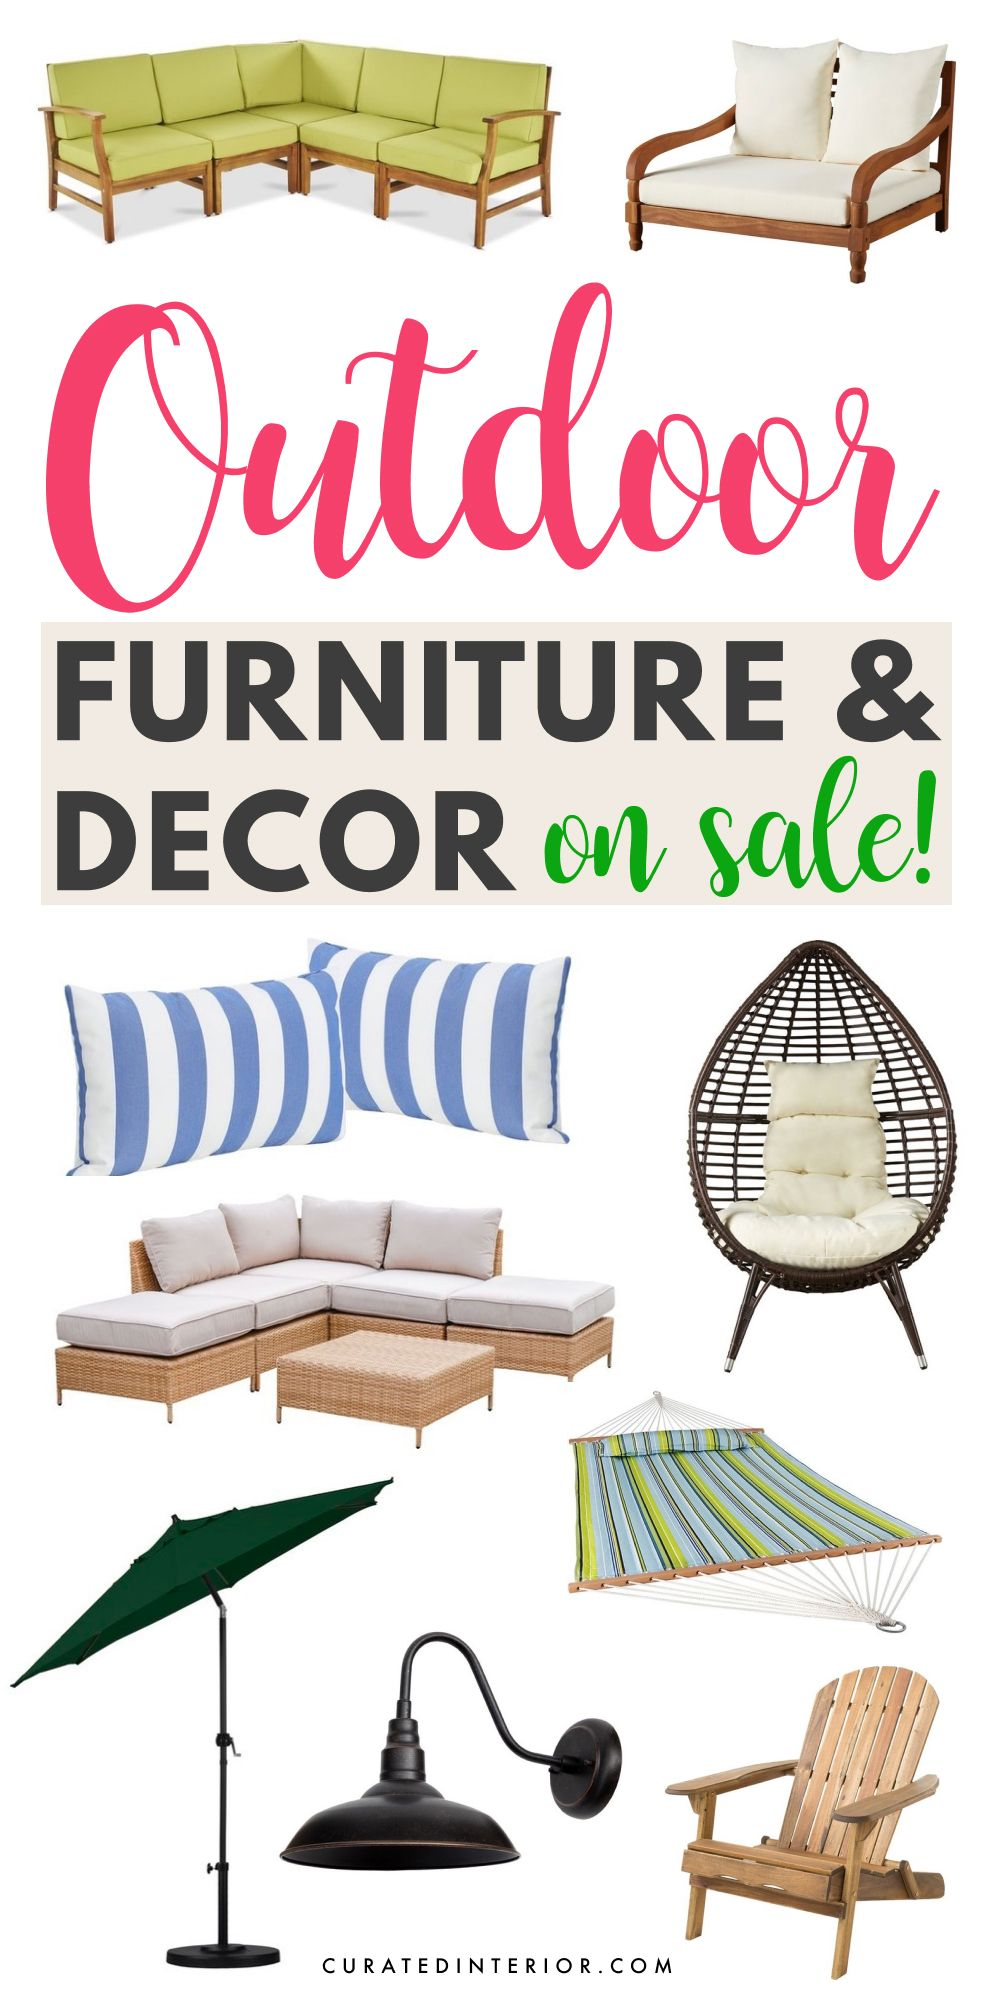 15 Pieces Of Outdoor Furniture Decor To Snag On Sale - Outdoor Furniture Clearance Sales